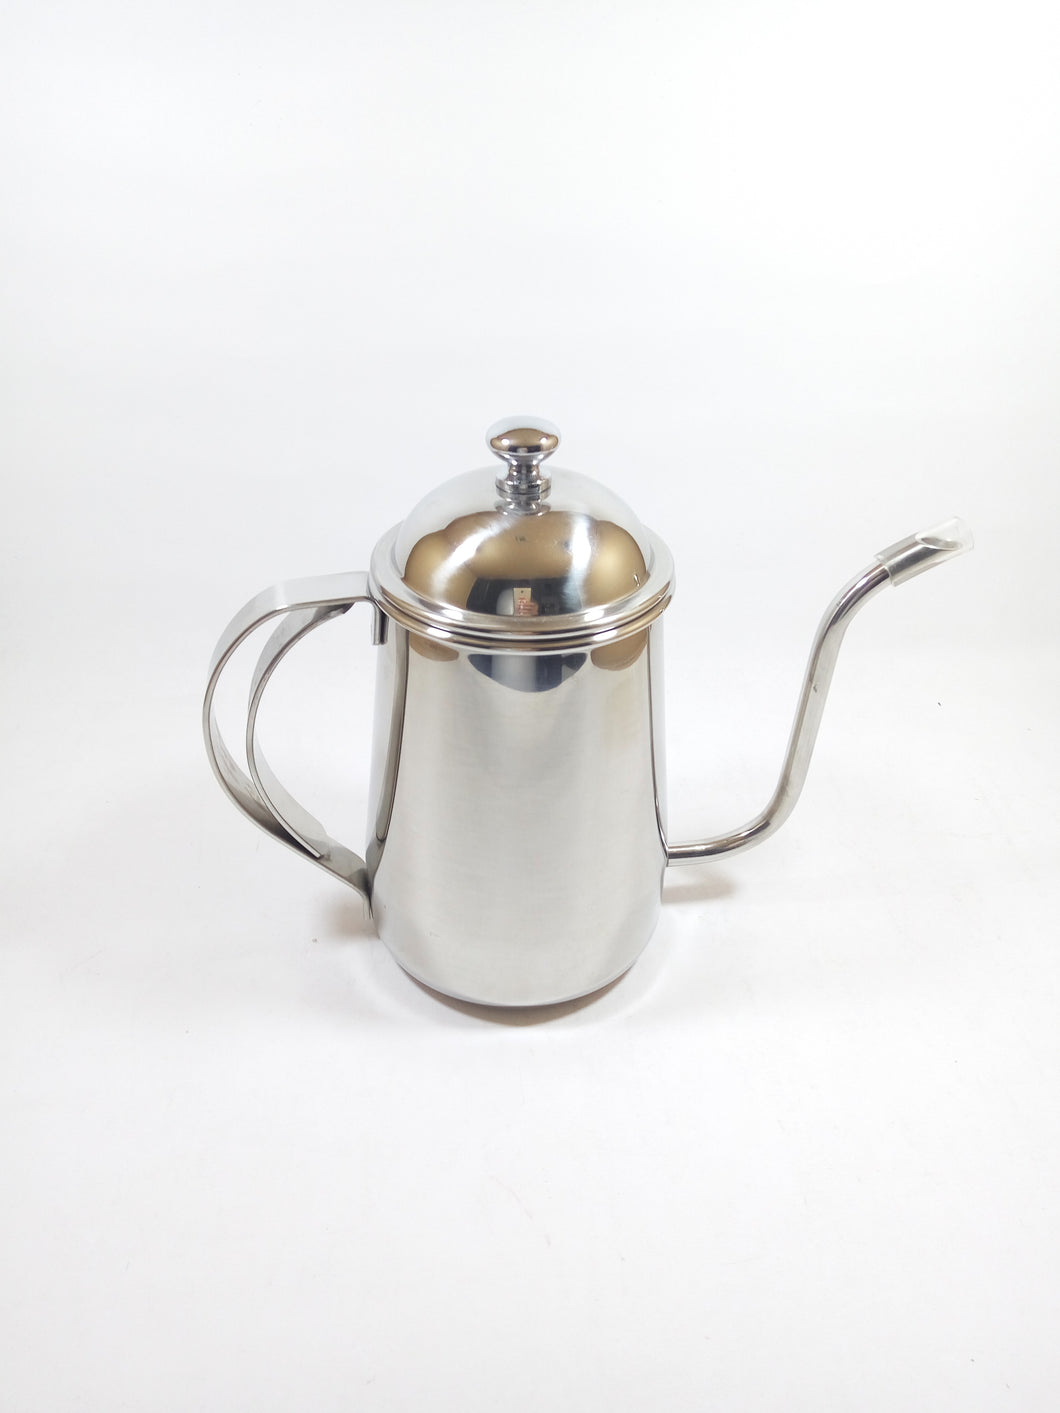 Kettle Leher Angsa 700ml Stainless Steel High Quality